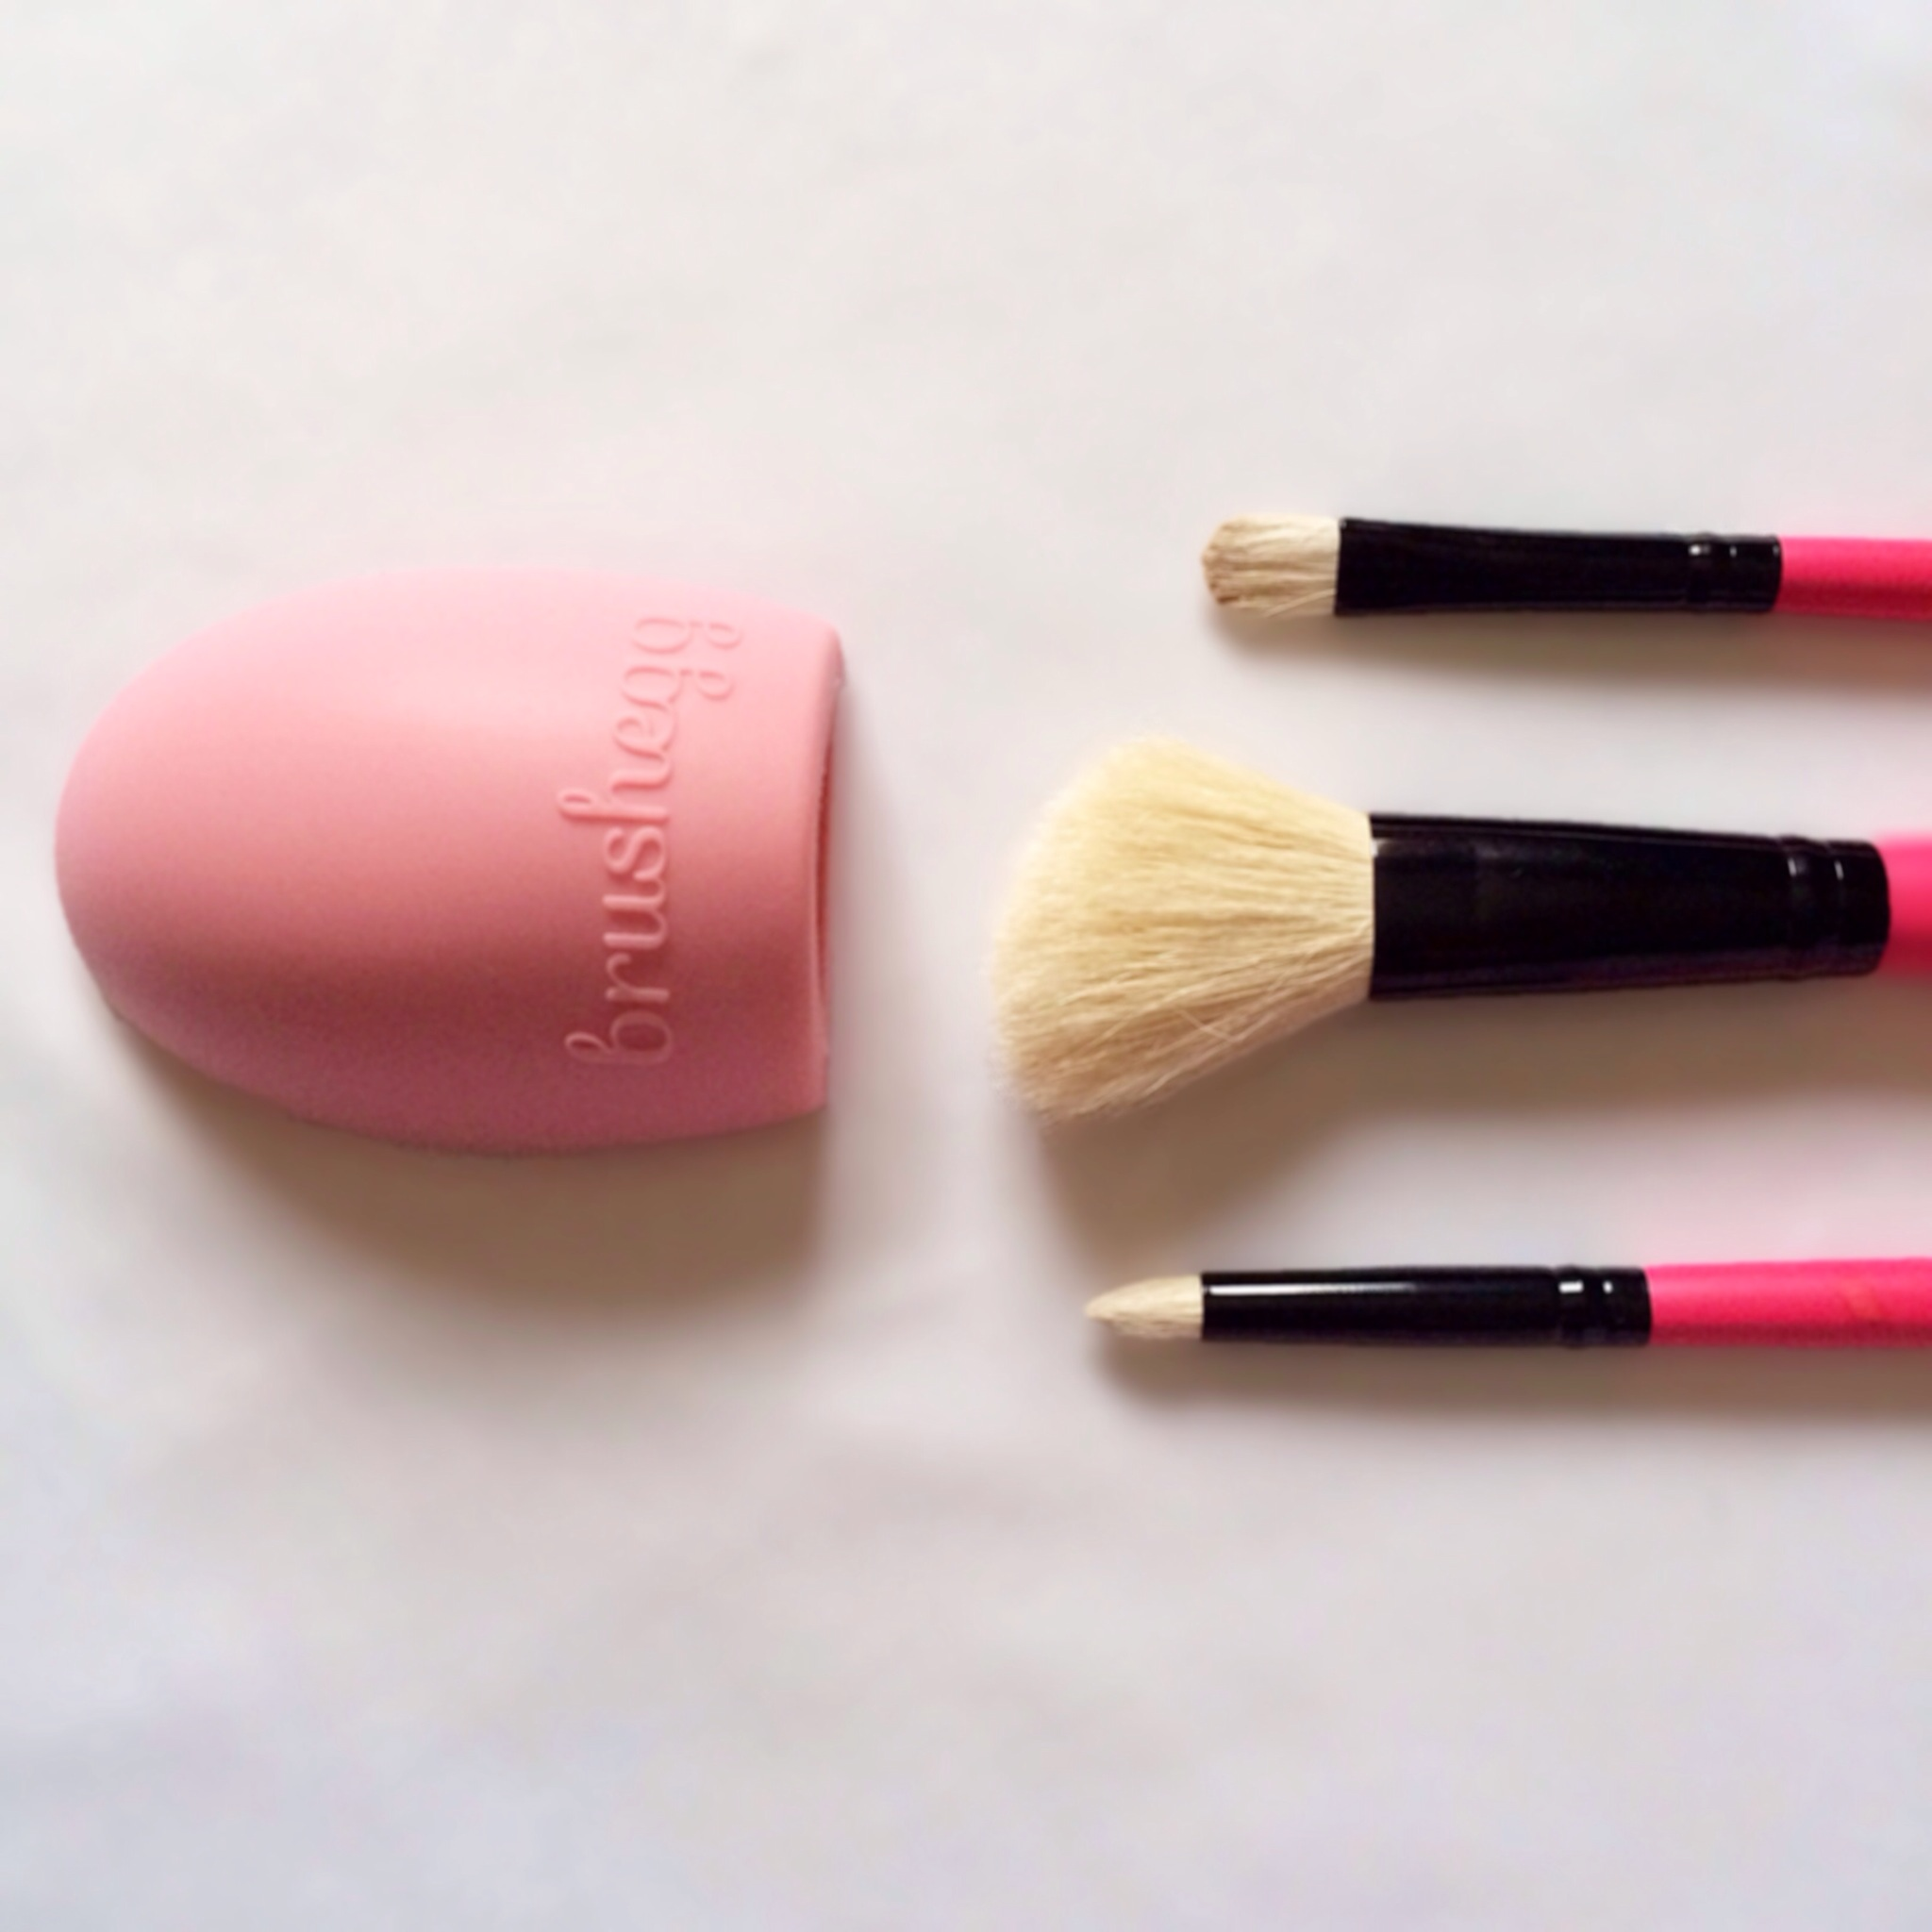 My Makeup Brush Cleansing Routine Mini Review Of The Egg All I Do Is Just Run Over A Few Times Whilst Under Free Flowing Stream Water Its Really That Simple